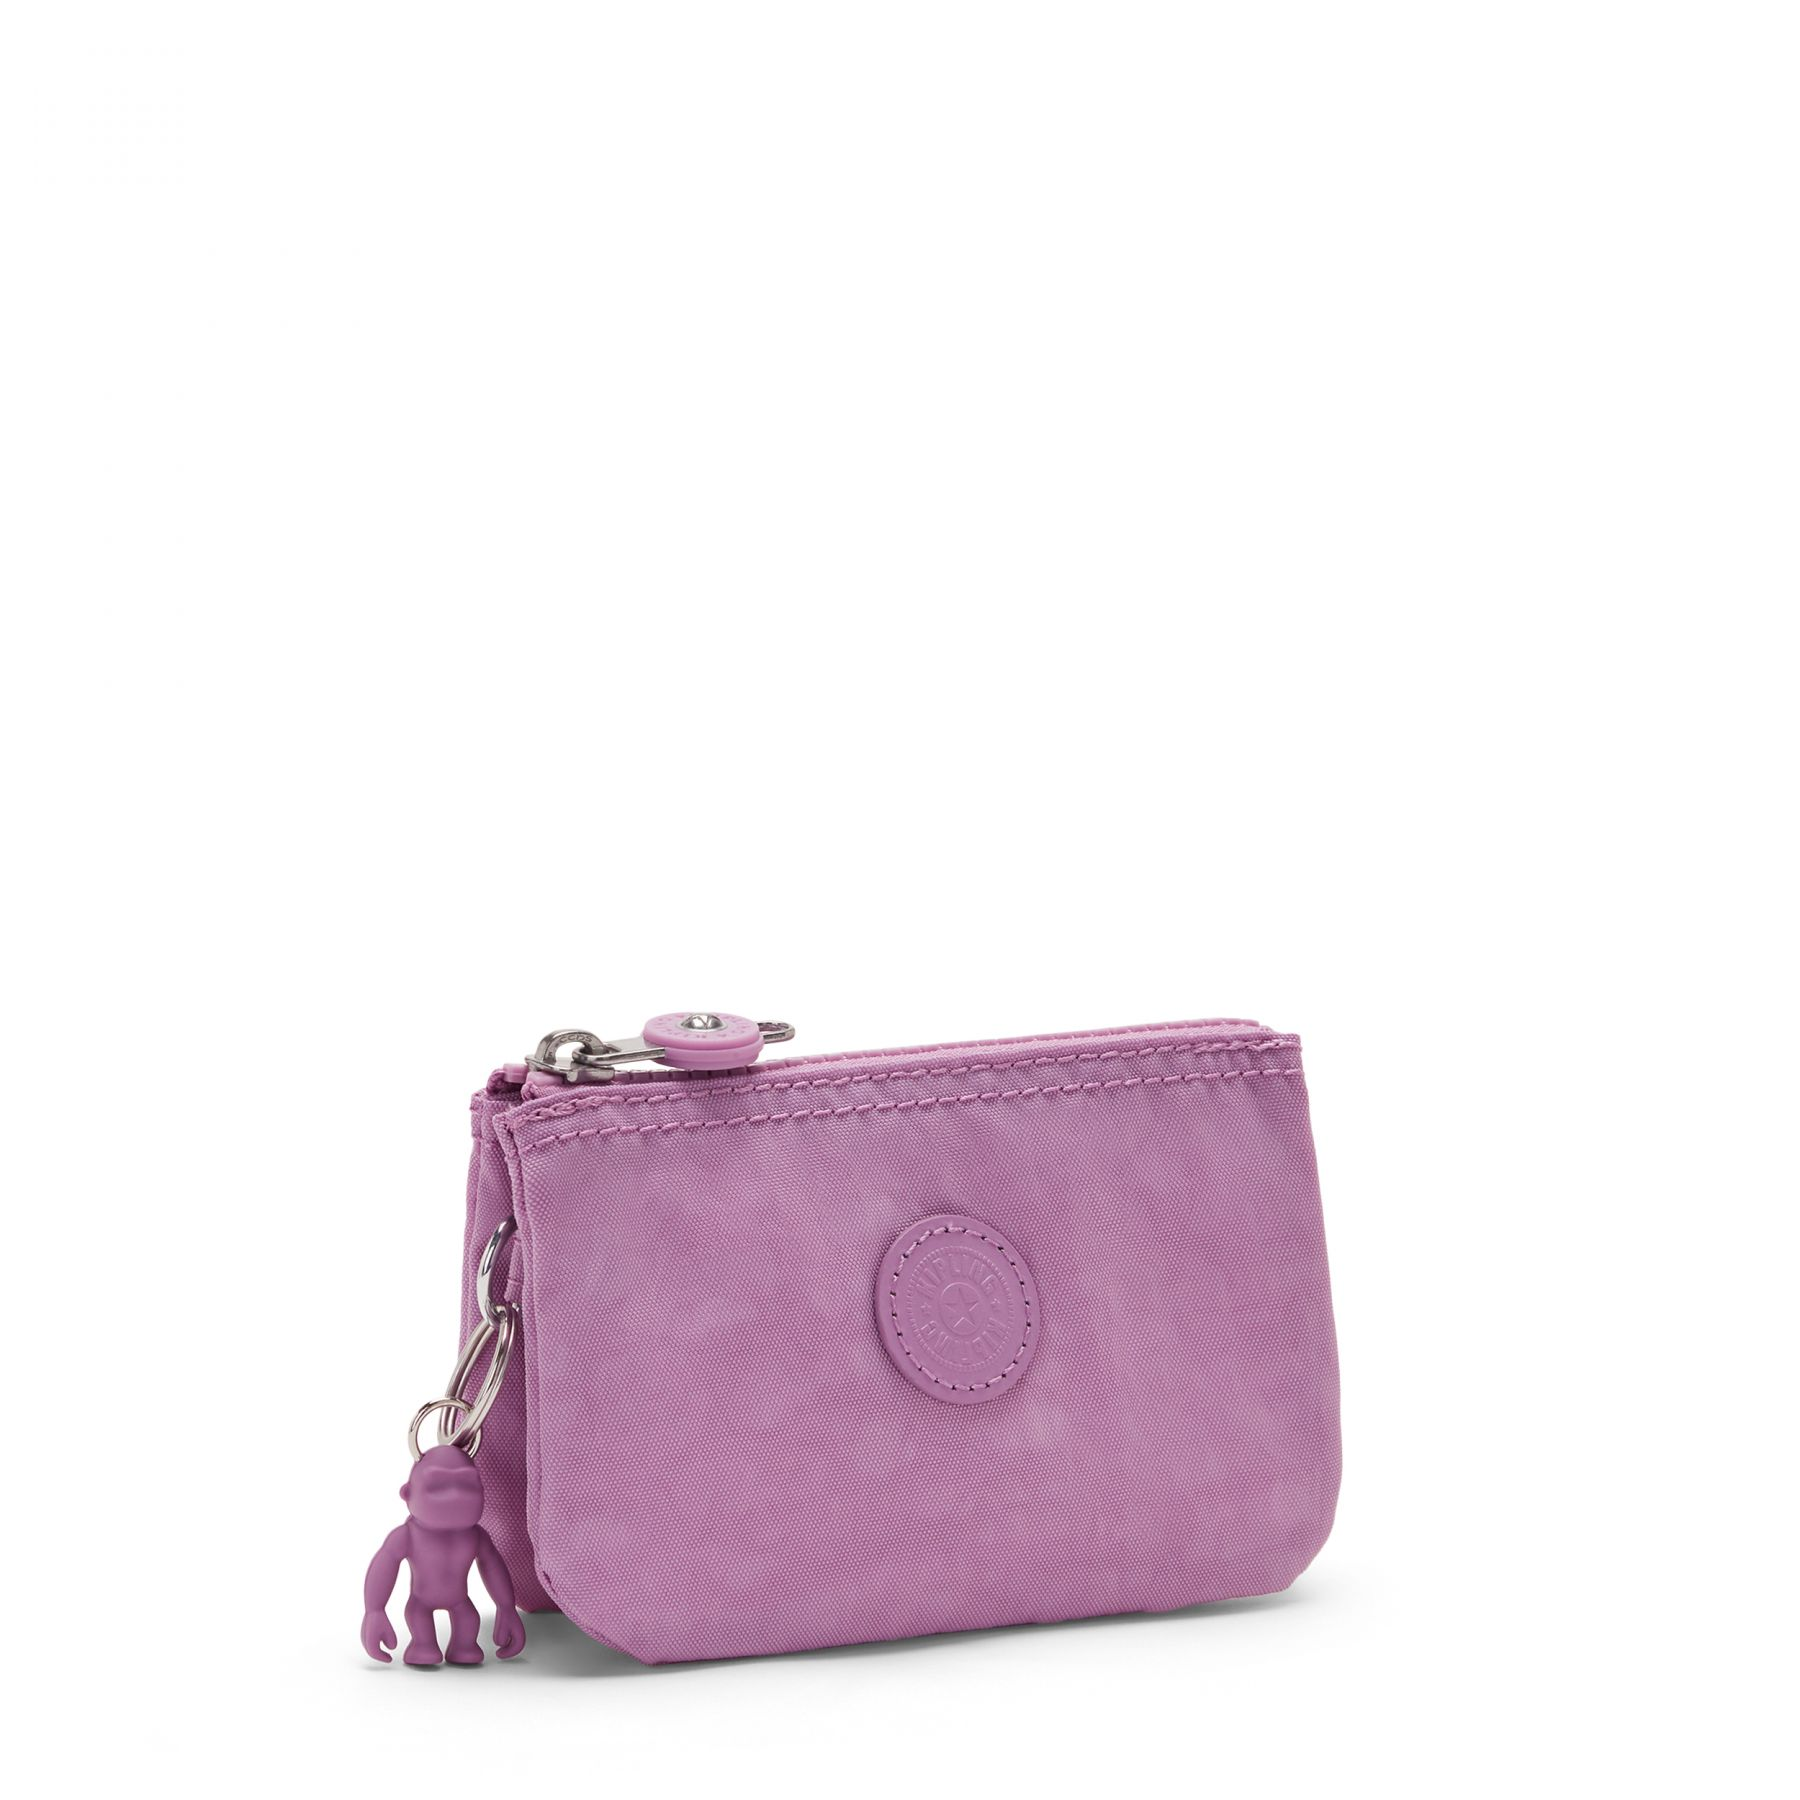 CREATIVITY S ACCESSORIES by Kipling - view 4